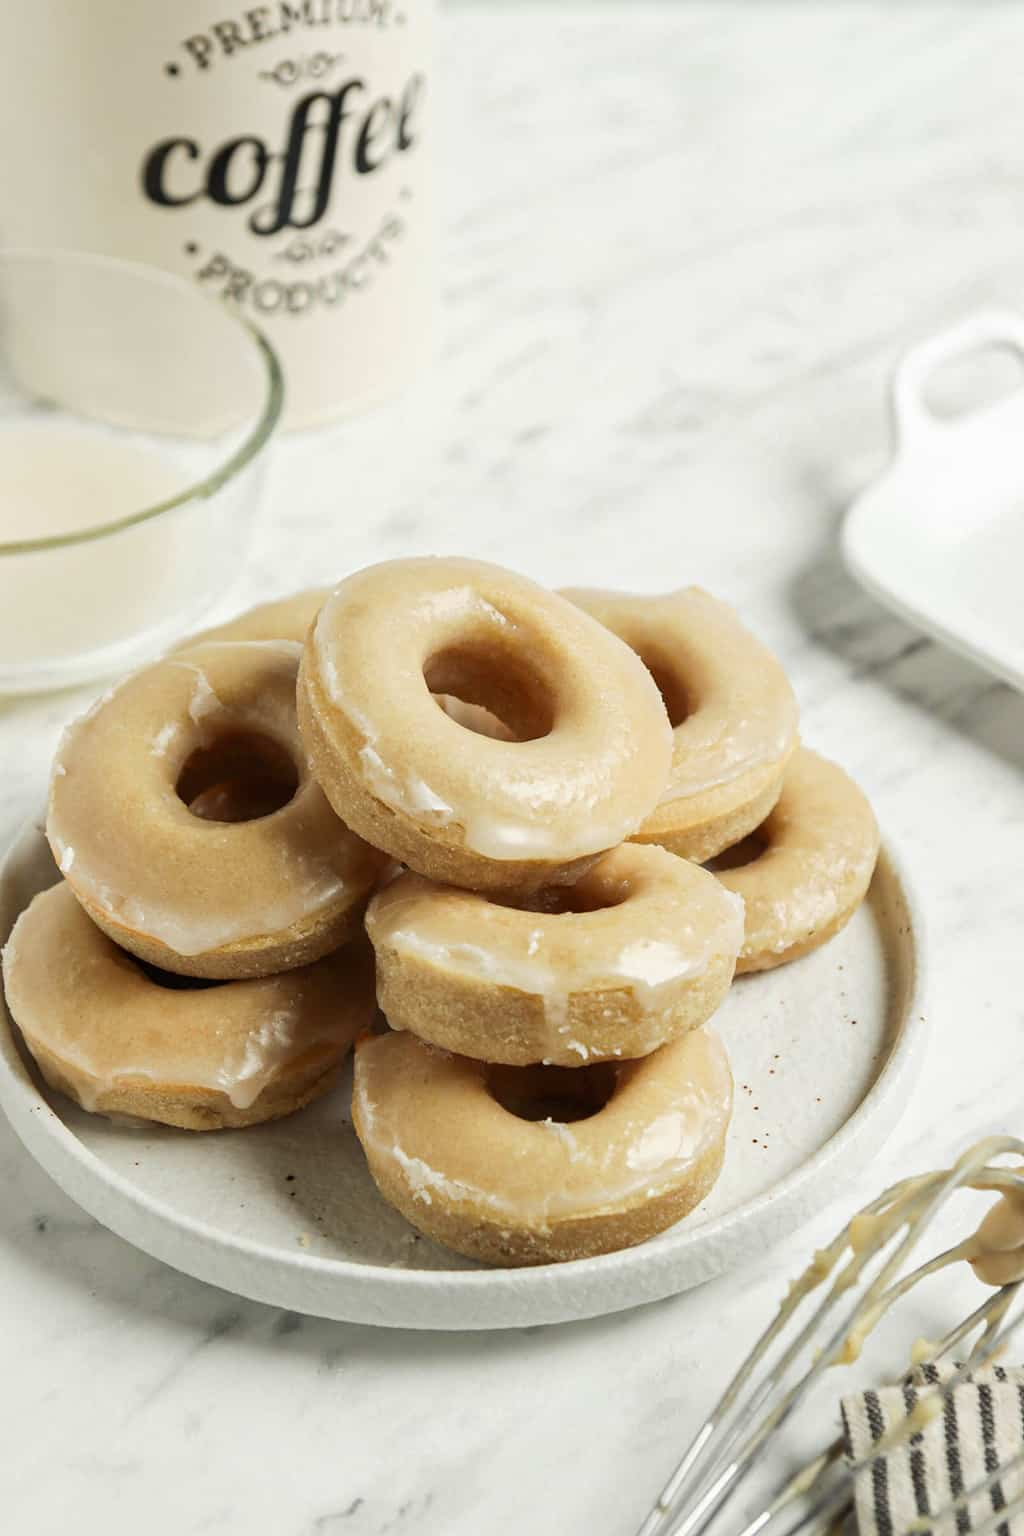 one plate filled with a group of glazed doughnuts from the vegan donut recipe ready to be eaten. One tin of coffee in the background